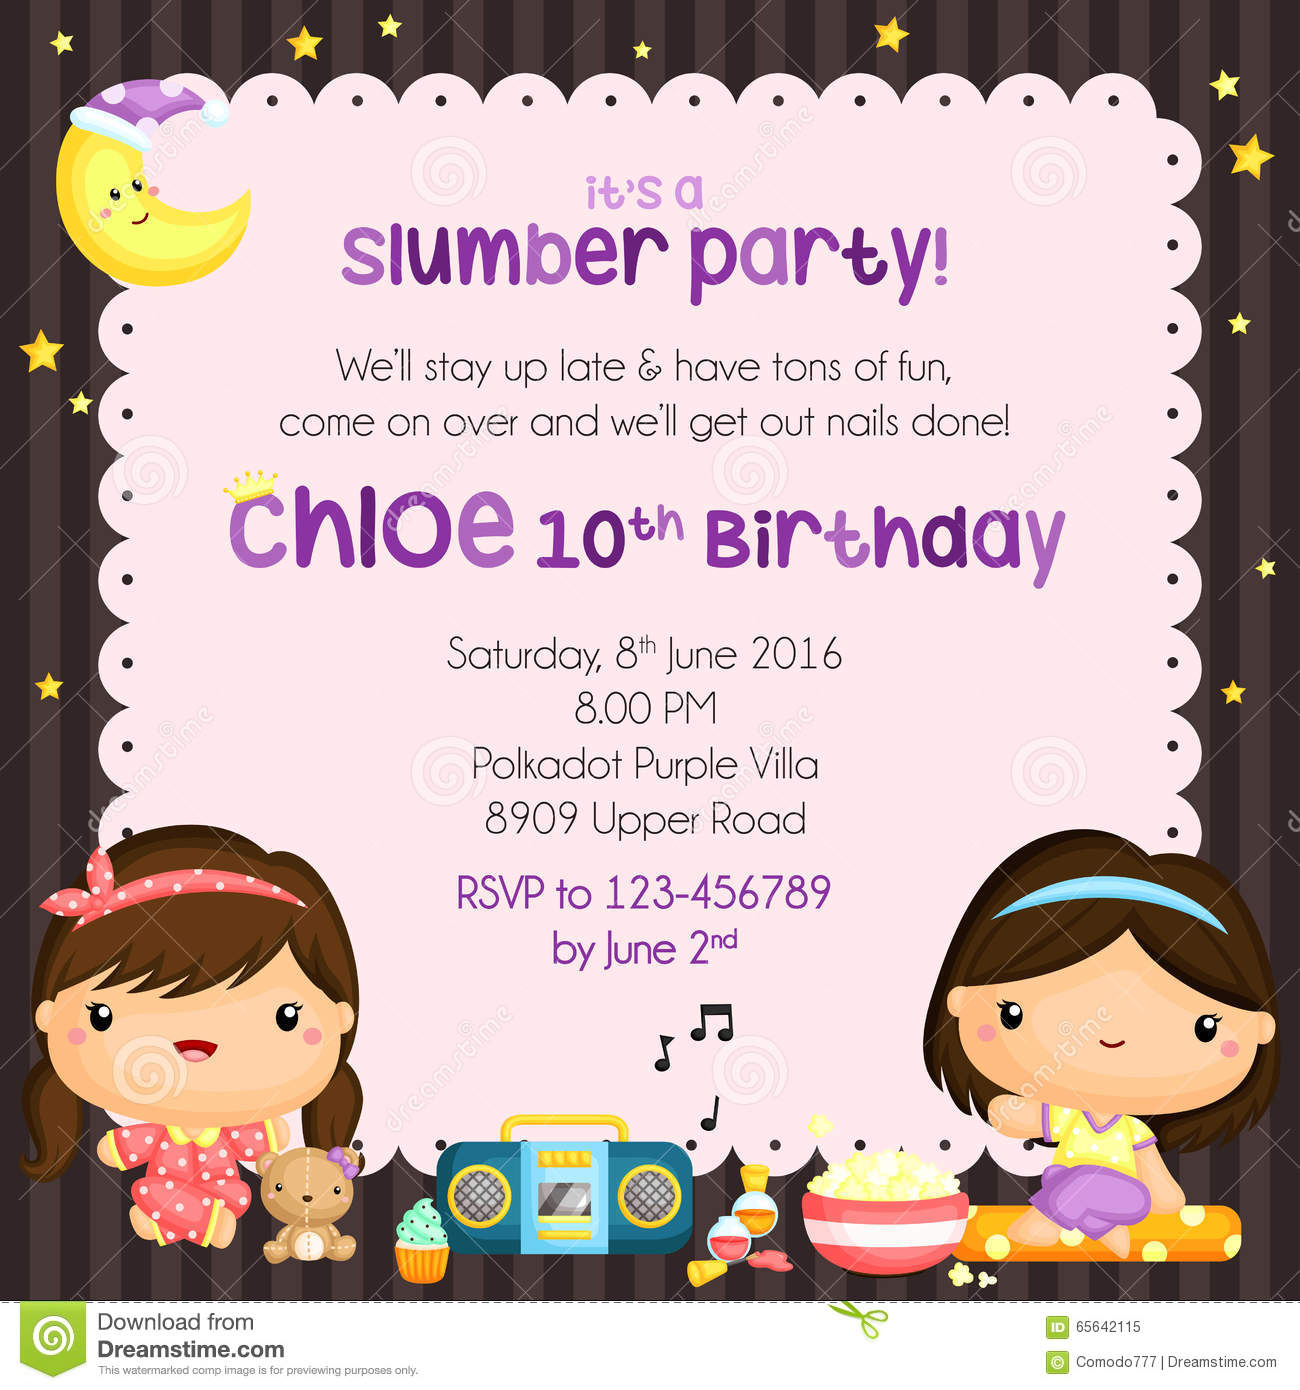 an invitation card for a birthday party ; slumber-birthday-party-invitation-card-cute-vector-65642115